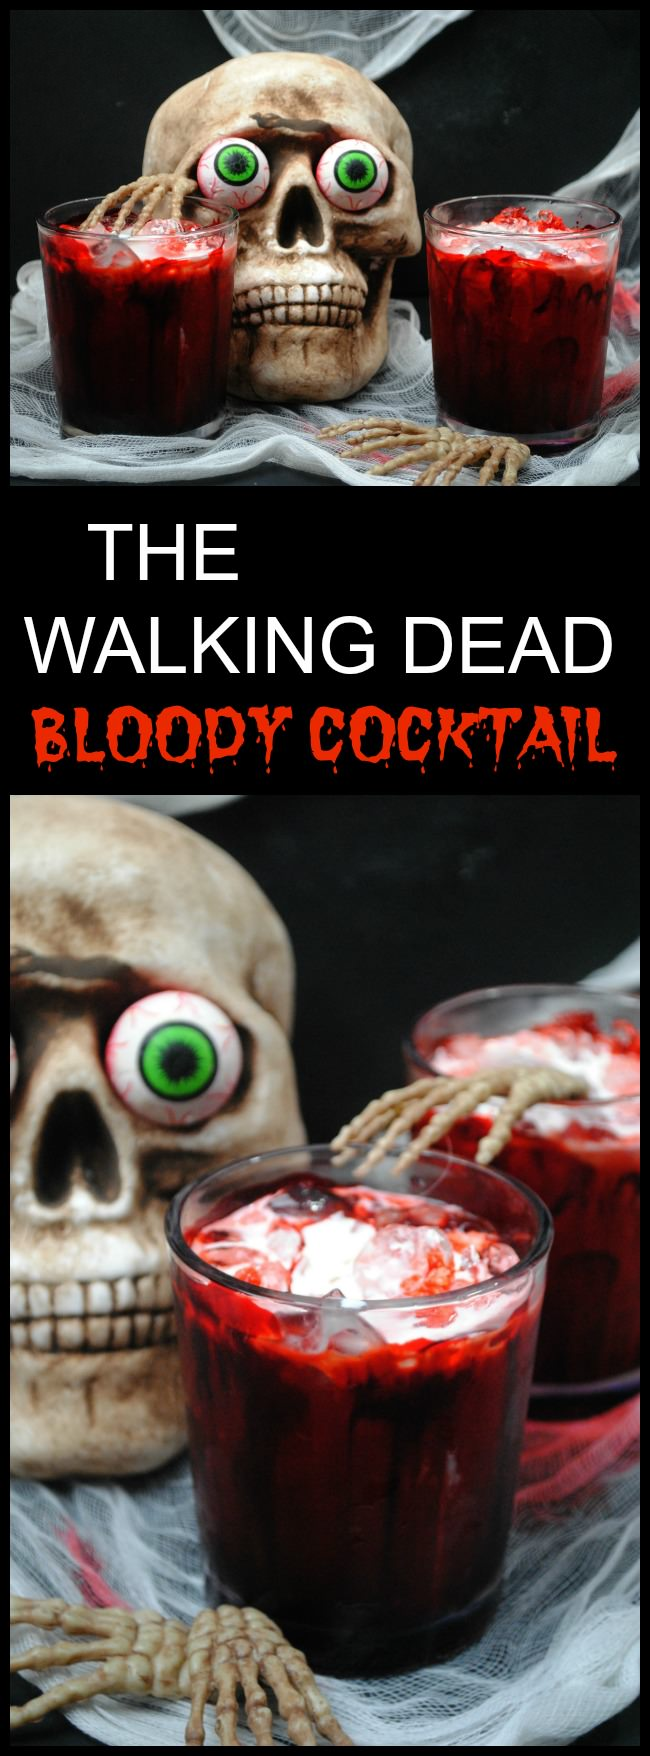 The Walking Dead Season 7 is upon us and why not get ready for it with an adult alcoholic beverage like The Walking Dead Bloody Cocktail recipe!